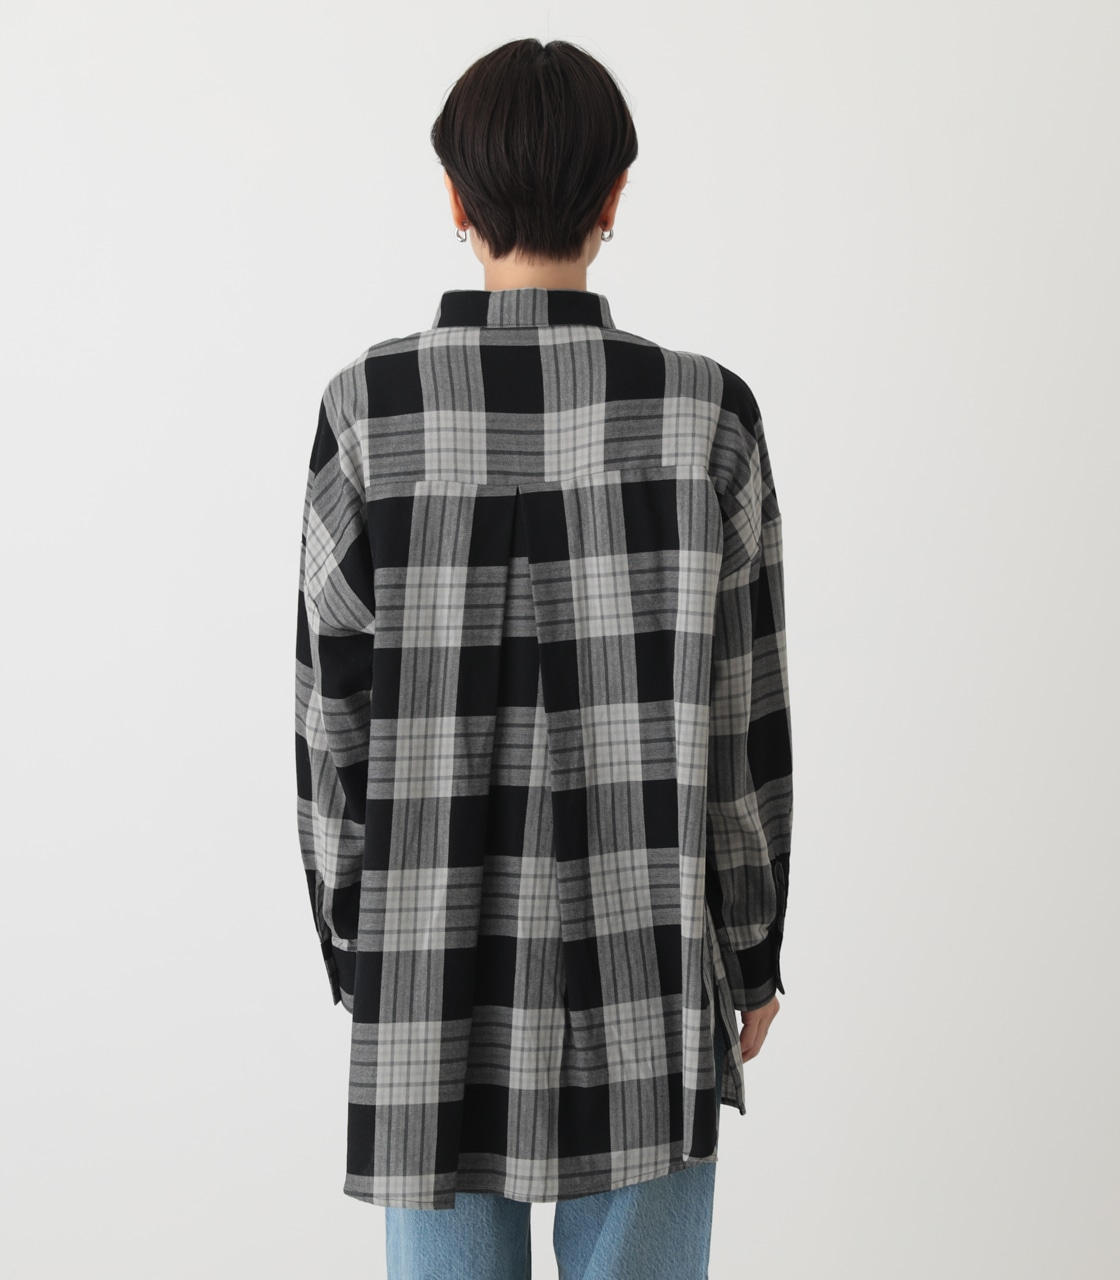 CHECK OVER SHIRT/チェックオーバーシャツ 詳細画像 柄BLK 7